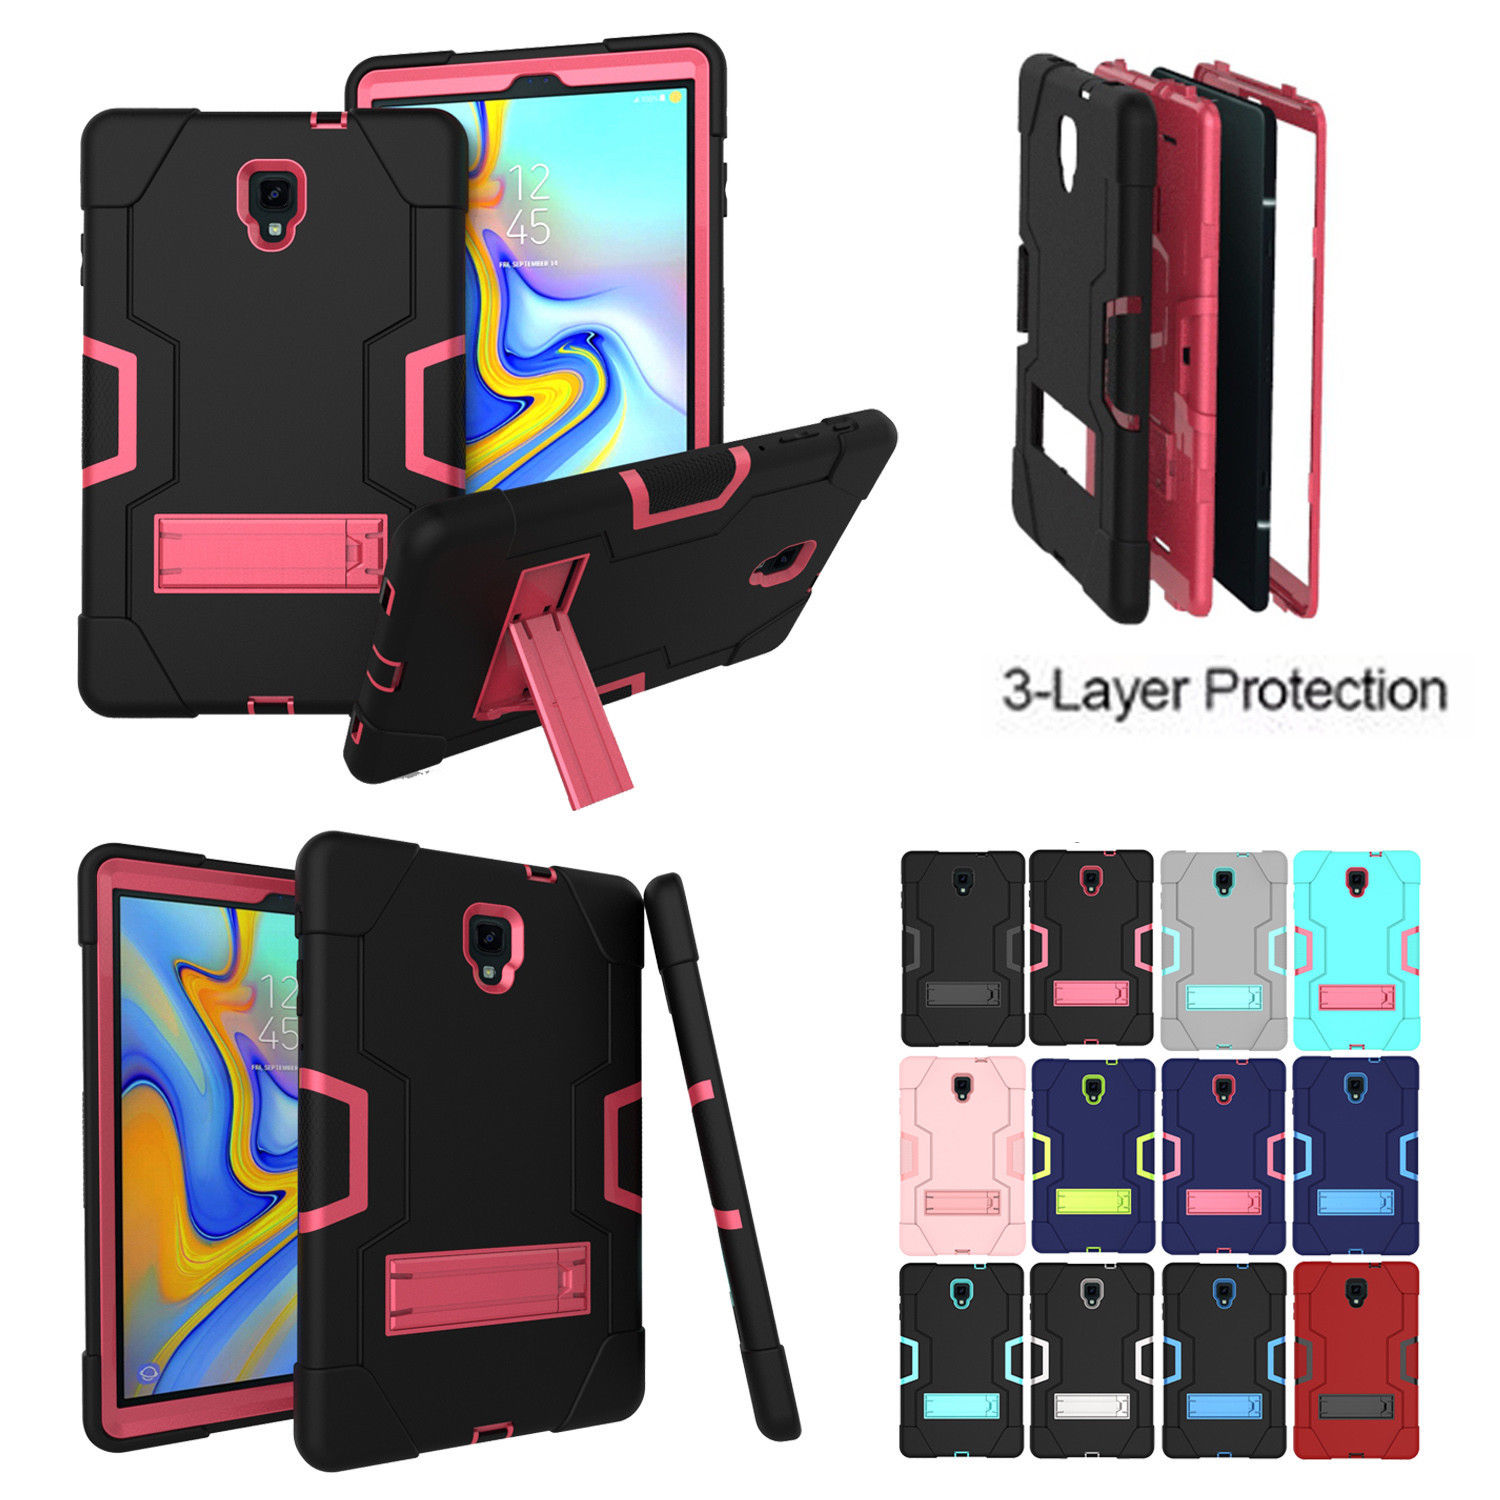 For Samsung Galaxy Tab A 10.5 T590 T595 T597 Case Kids Shockproof Hybrid Heavy Hard Protective Cover Tab A T590 T597 Tablet caseFor Samsung Galaxy Tab A 10.5 T590 T595 T597 Case Kids Shockproof Hybrid Heavy Hard Protective Cover Tab A T590 T597 Tablet case